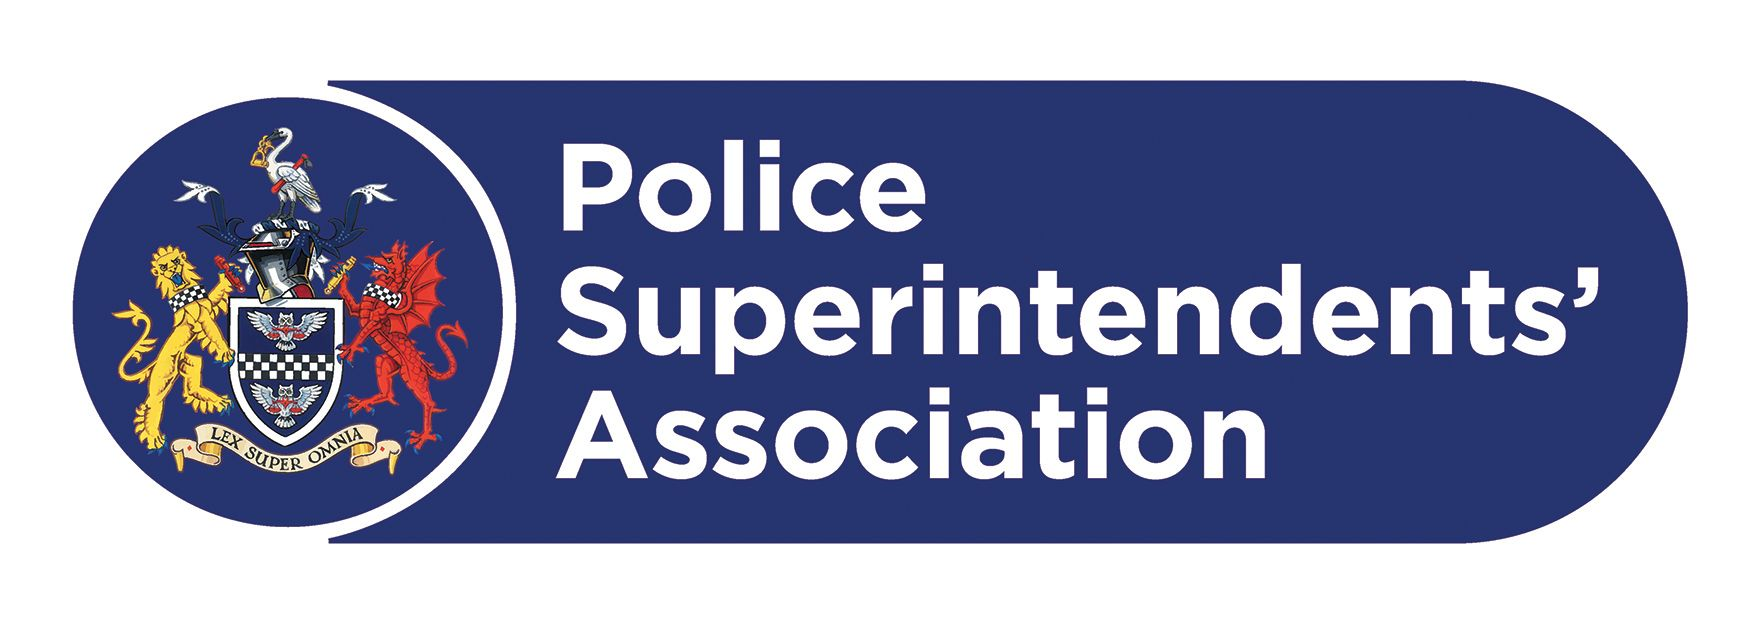 Police Superintendents' Association